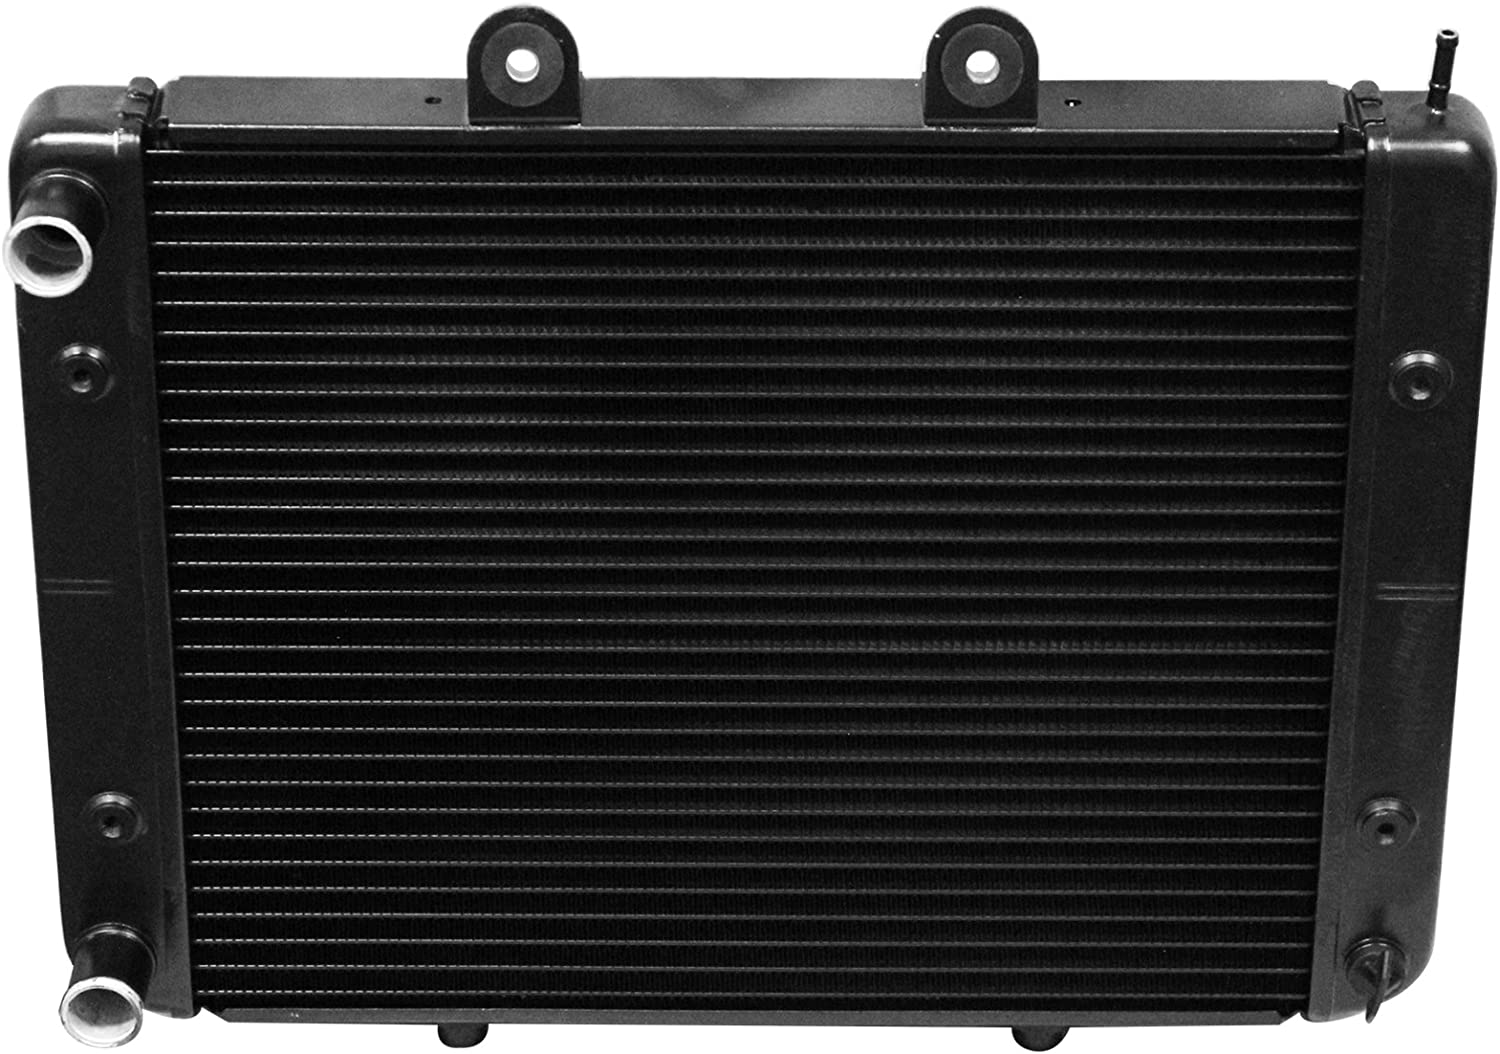 RADIATOR Fits POLARIS RANGER 700 6X6 EFI 2006 2007 2008 2009